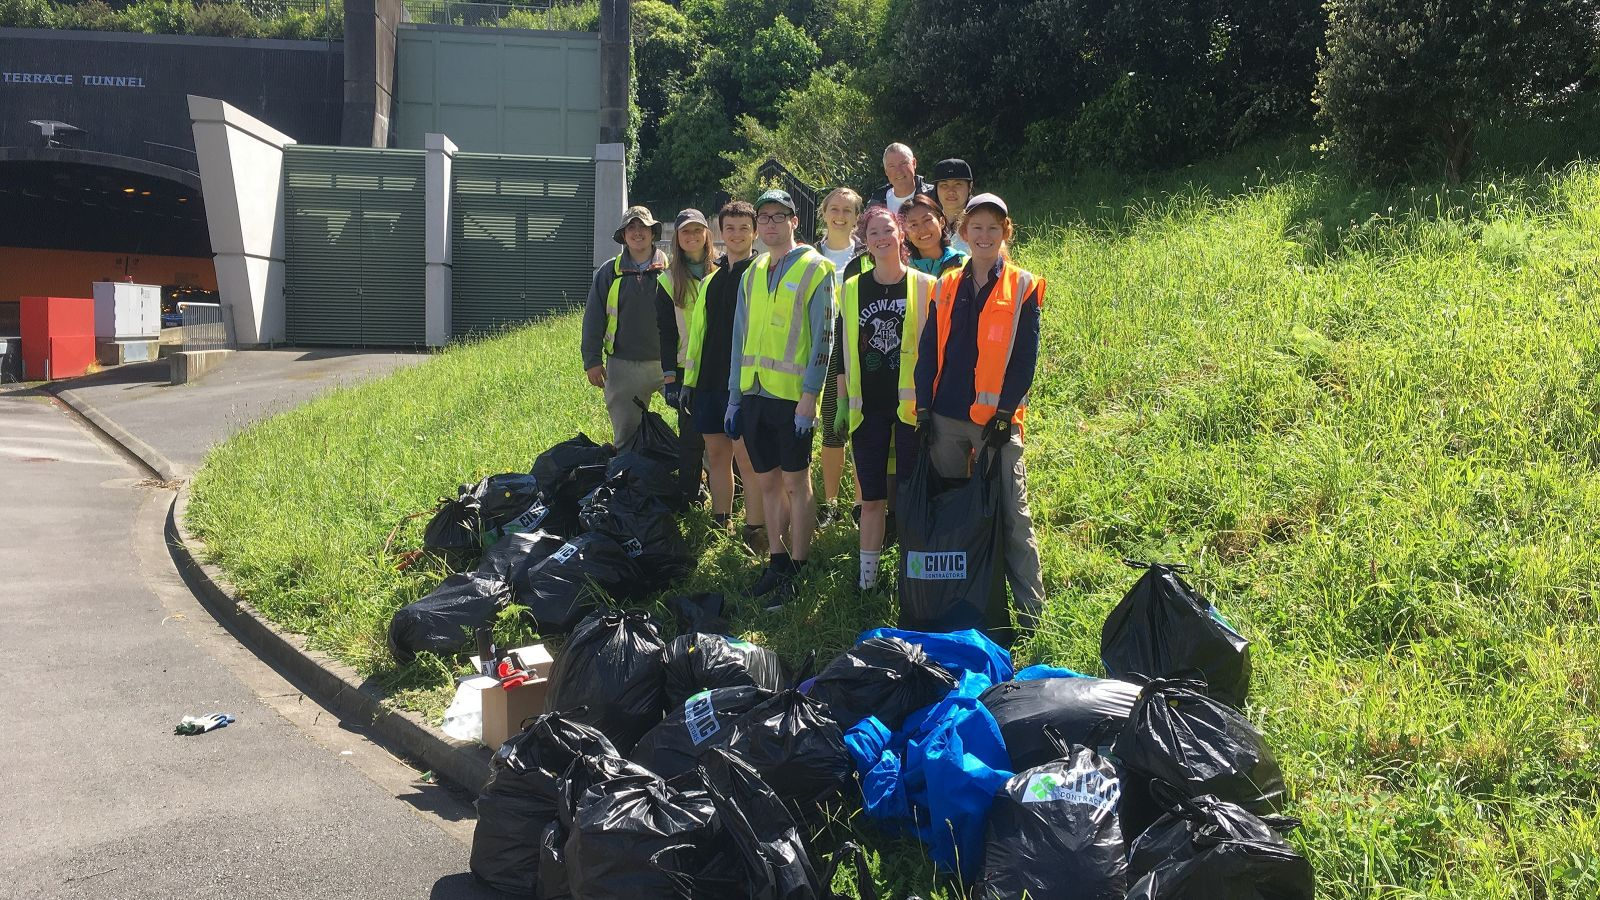 VicPlus students assist with tunnel clean-up